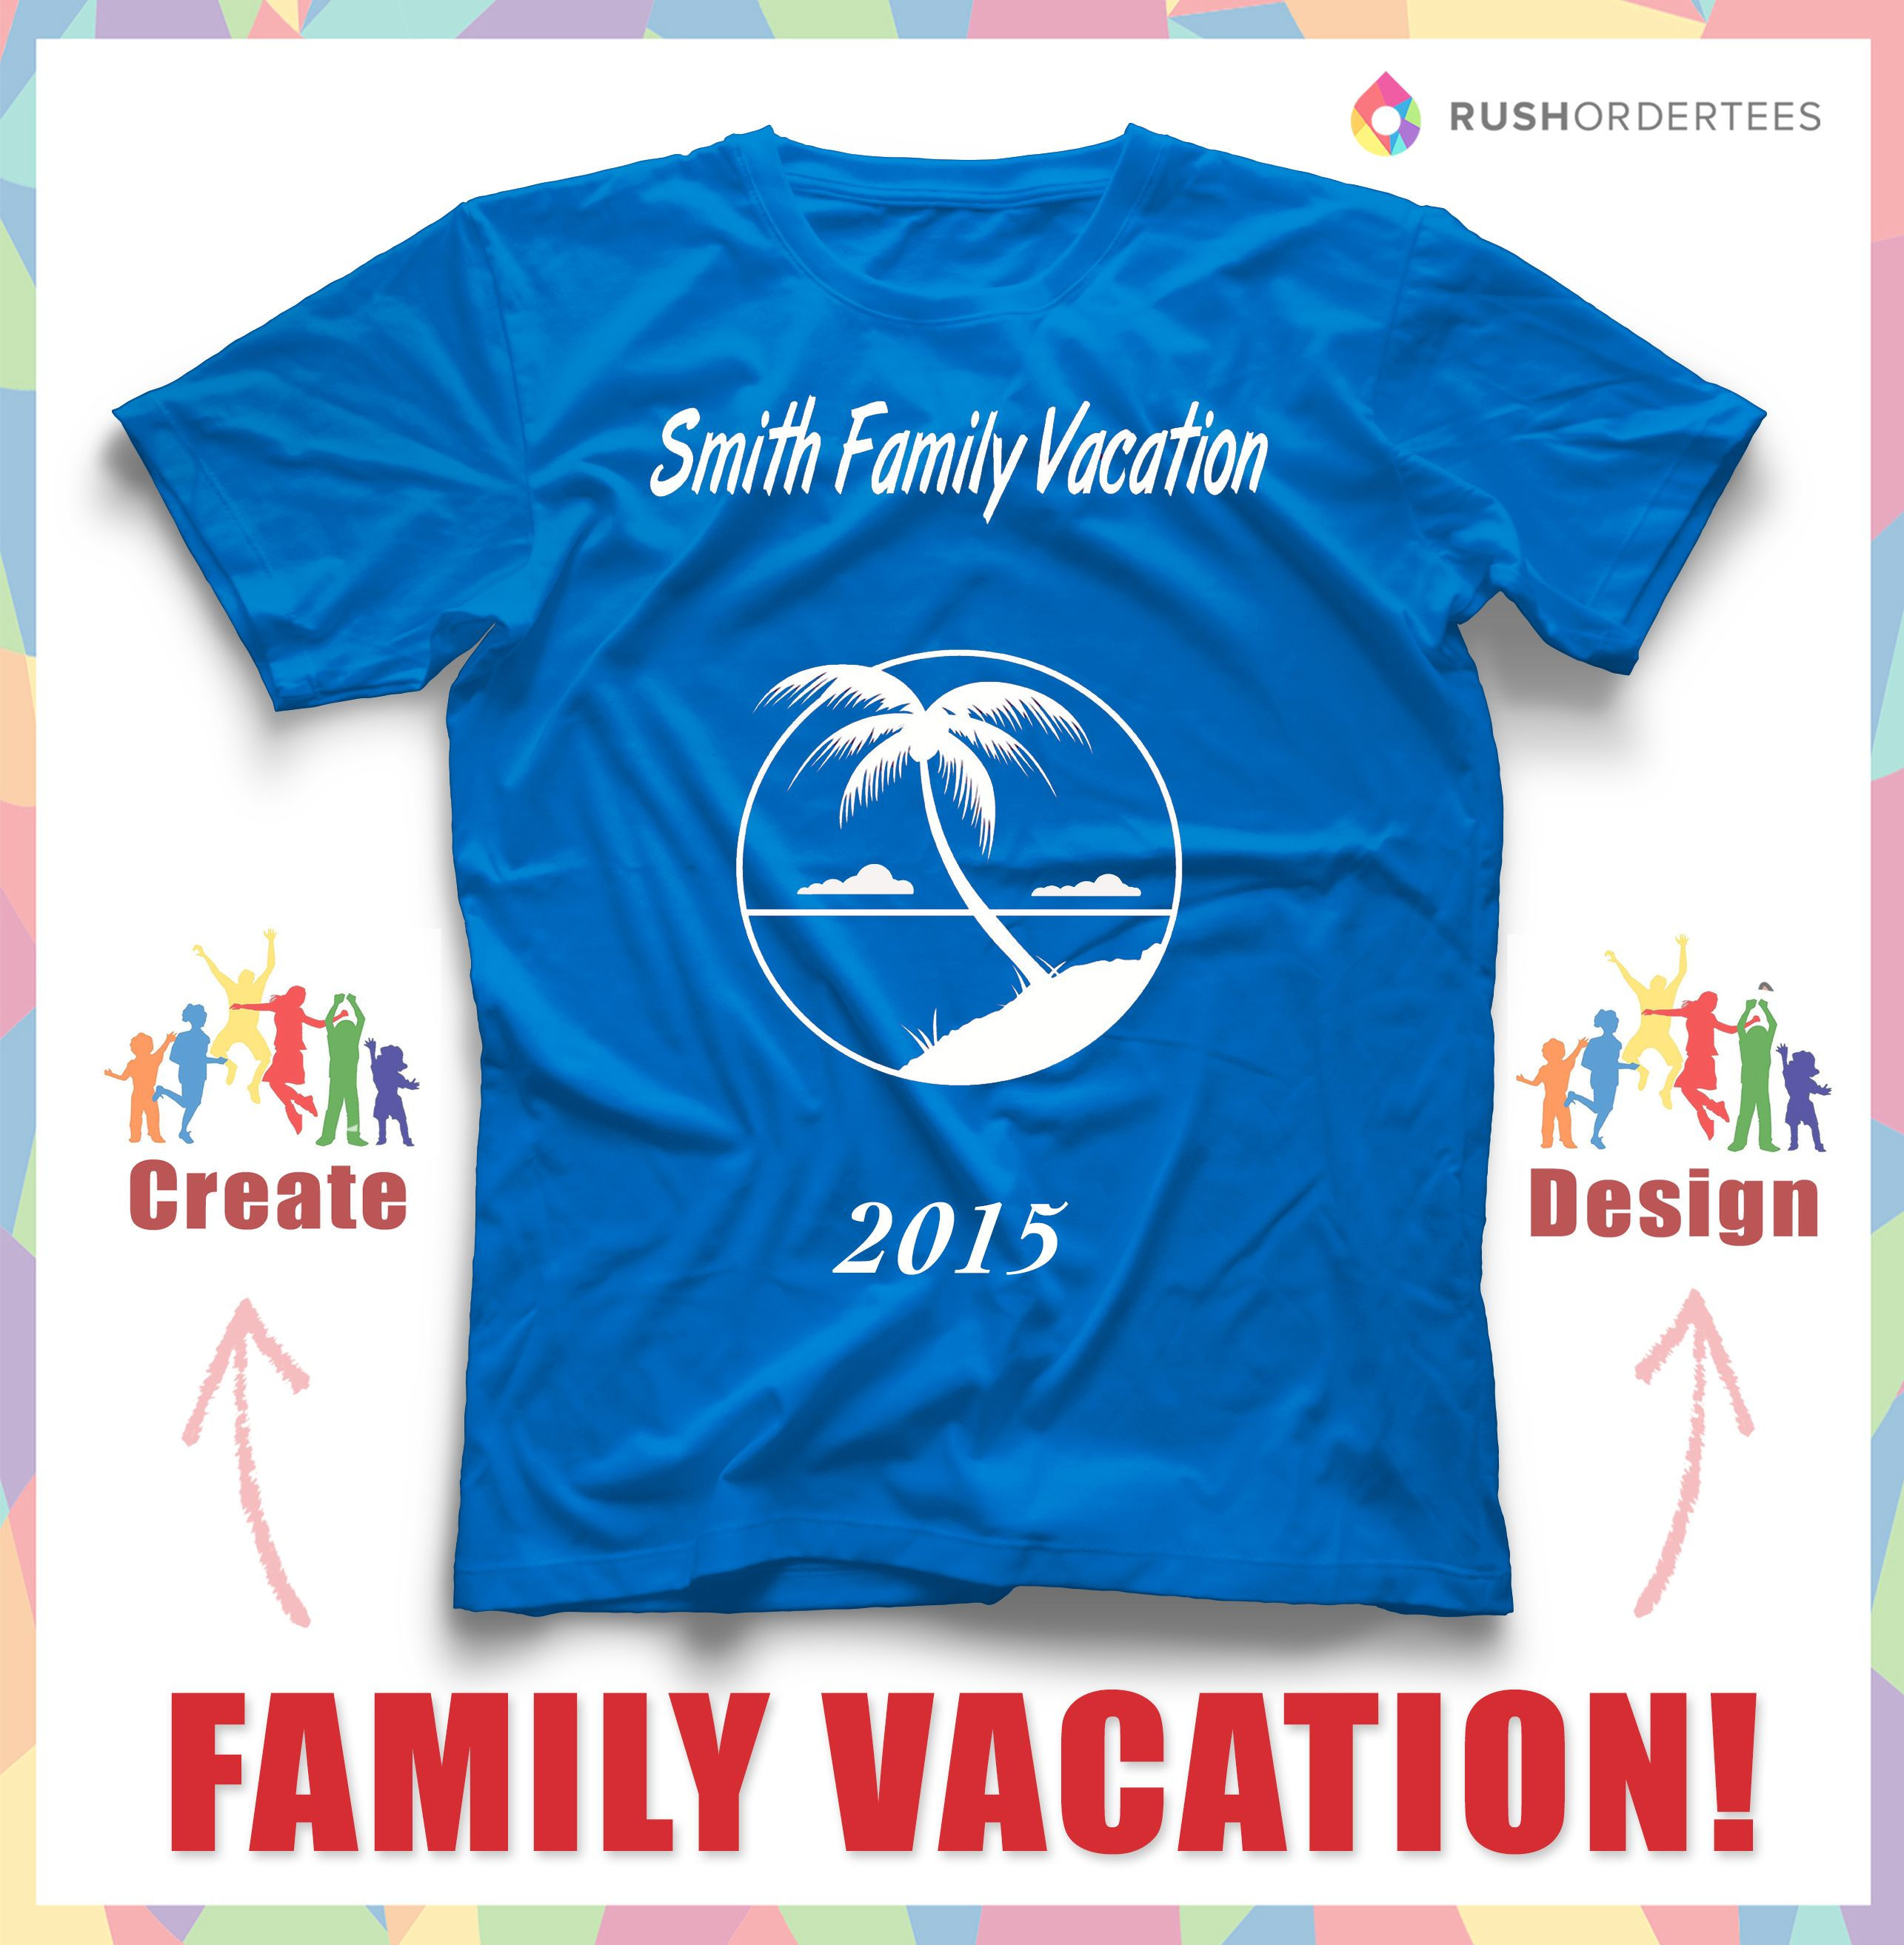 Sweatshirt Design Ideas im fine t shirt Family Cruise Vacation Custom T Shirt Design Idea Create A Family Vacation Shirt Design